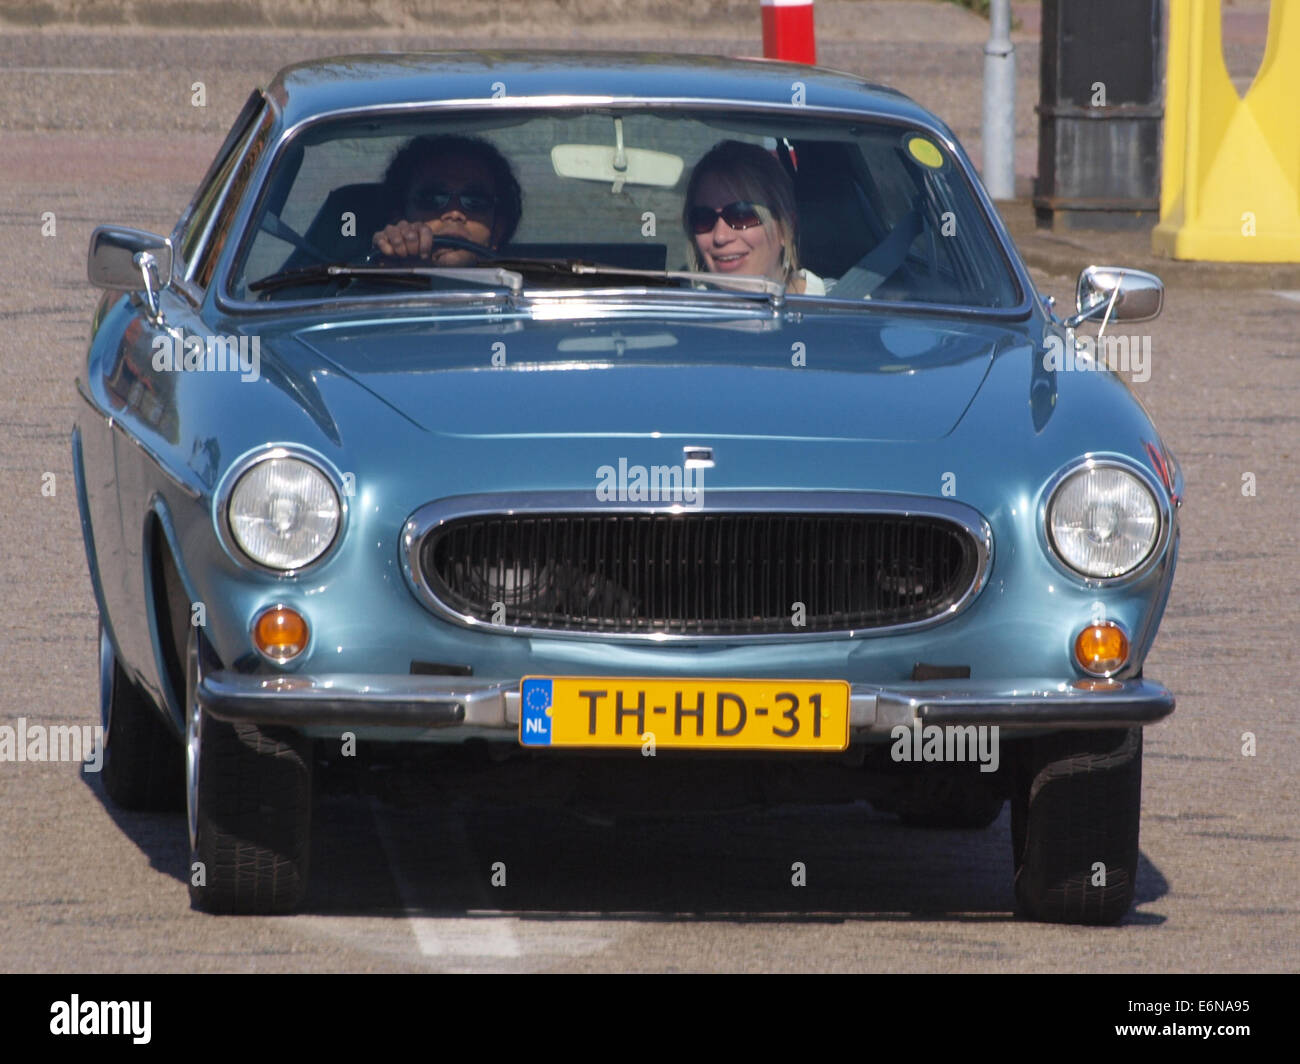 1973 Volvo 1800 ES, dutch licecence registration TH-HD-31 - Stock Image